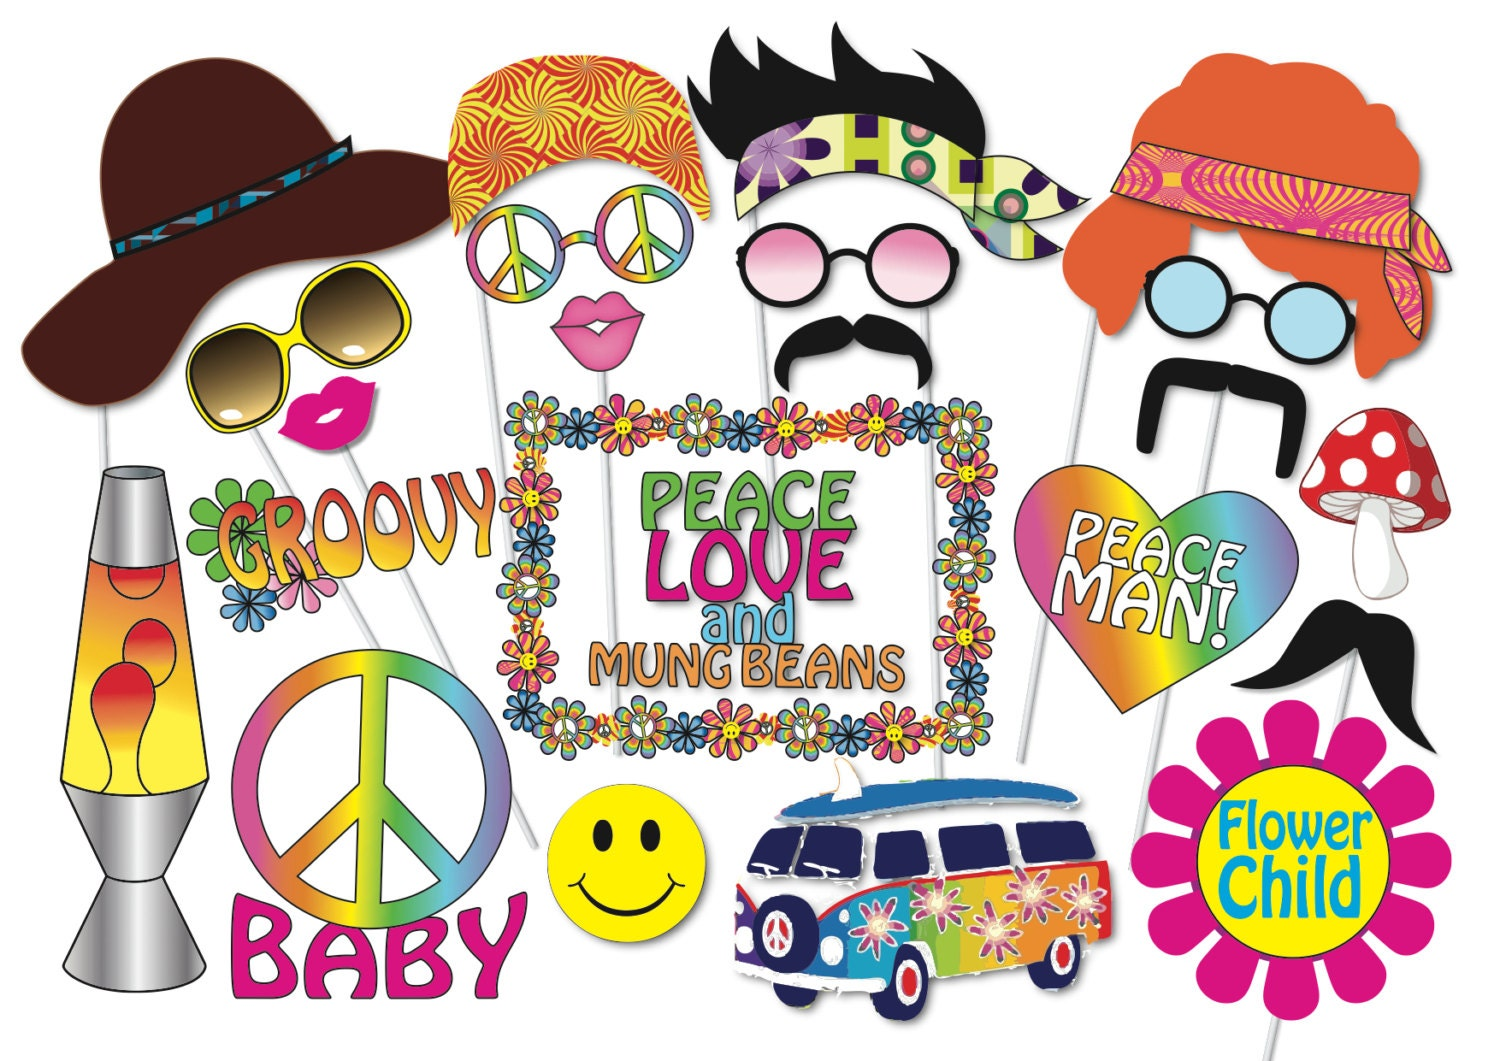 Hippie party on pinterest 60s party hippie birthday for 60s party decoration ideas